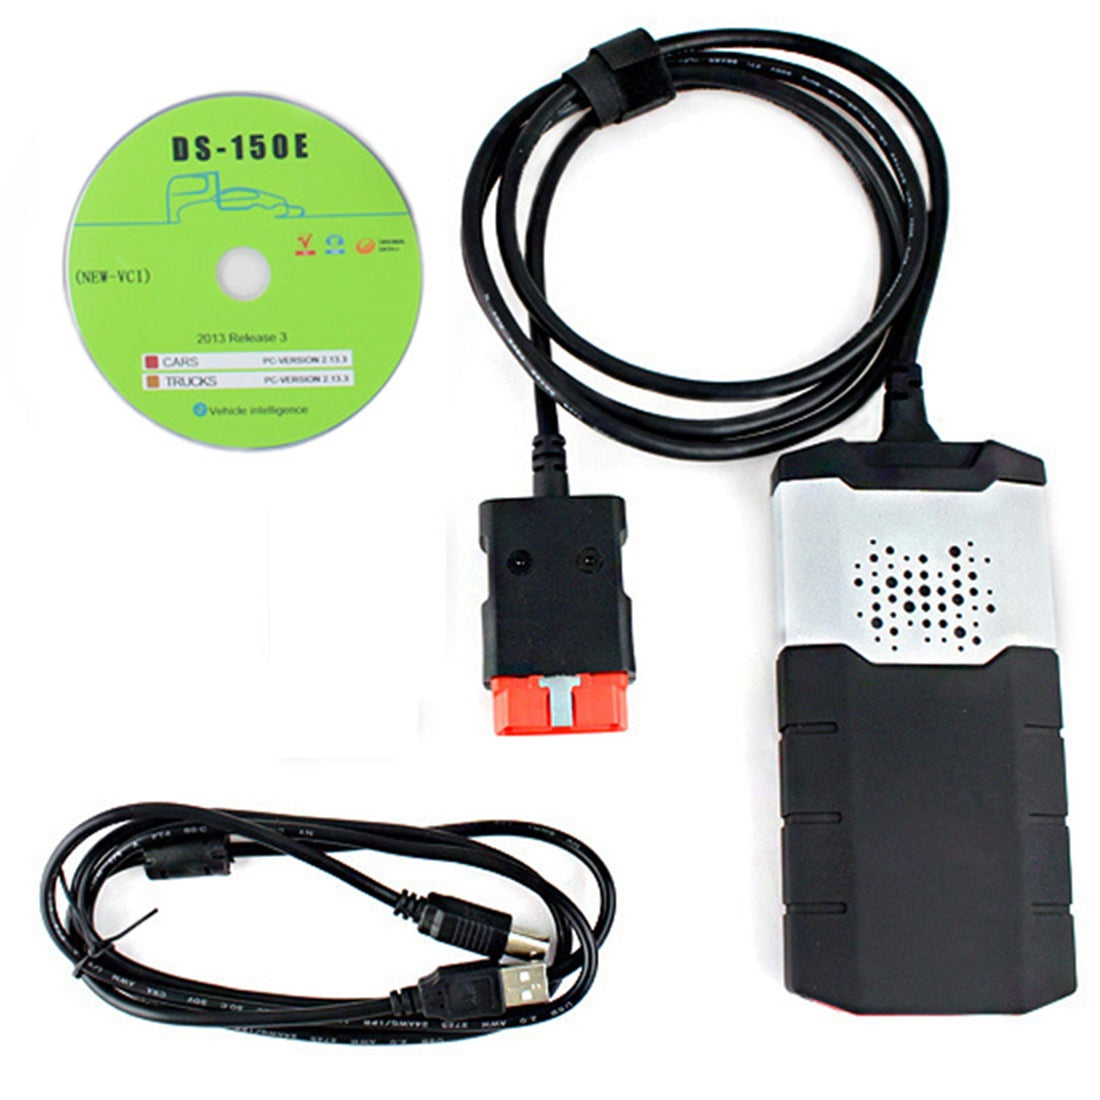 Delphi DS150E Autocom CDP Professional Auto CDP for Autocom Diagnostic Car Cables OBD2 Diagnostic Tool